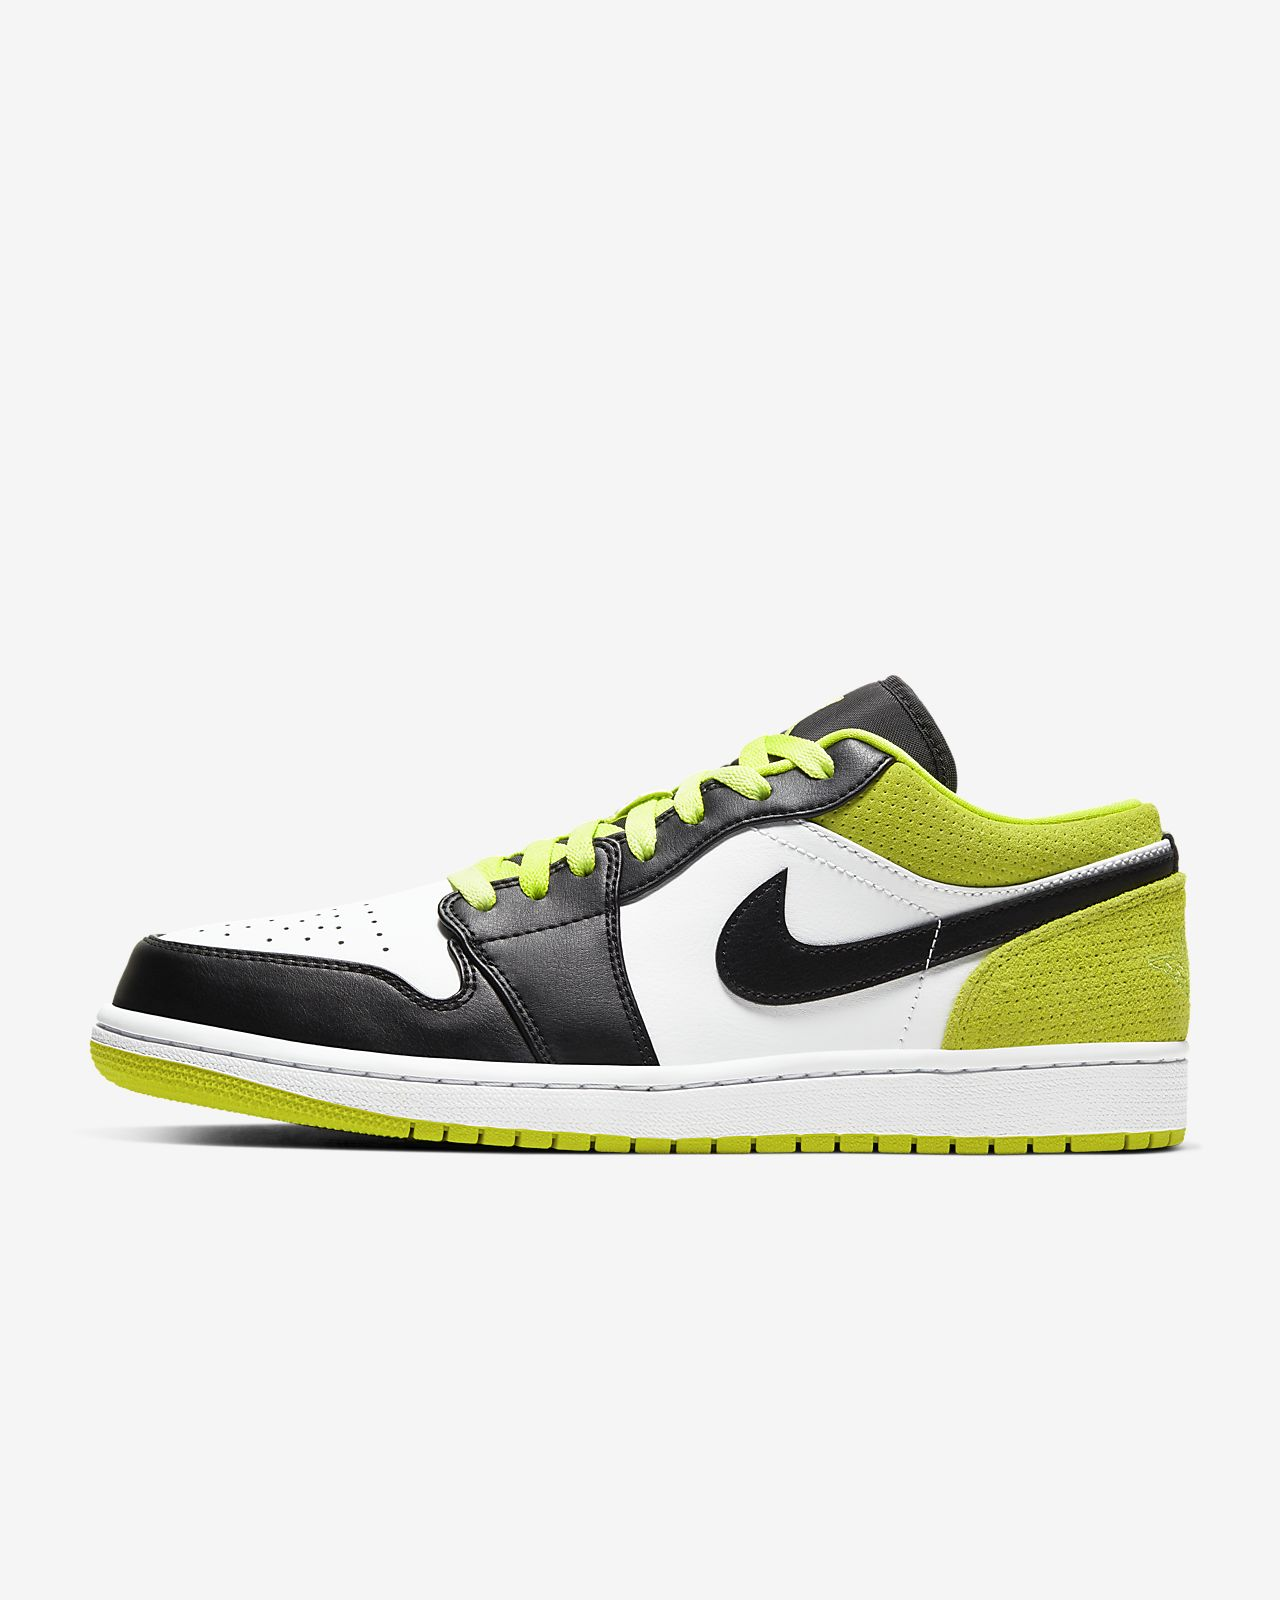 Calzado Air Jordan 1 Low SE